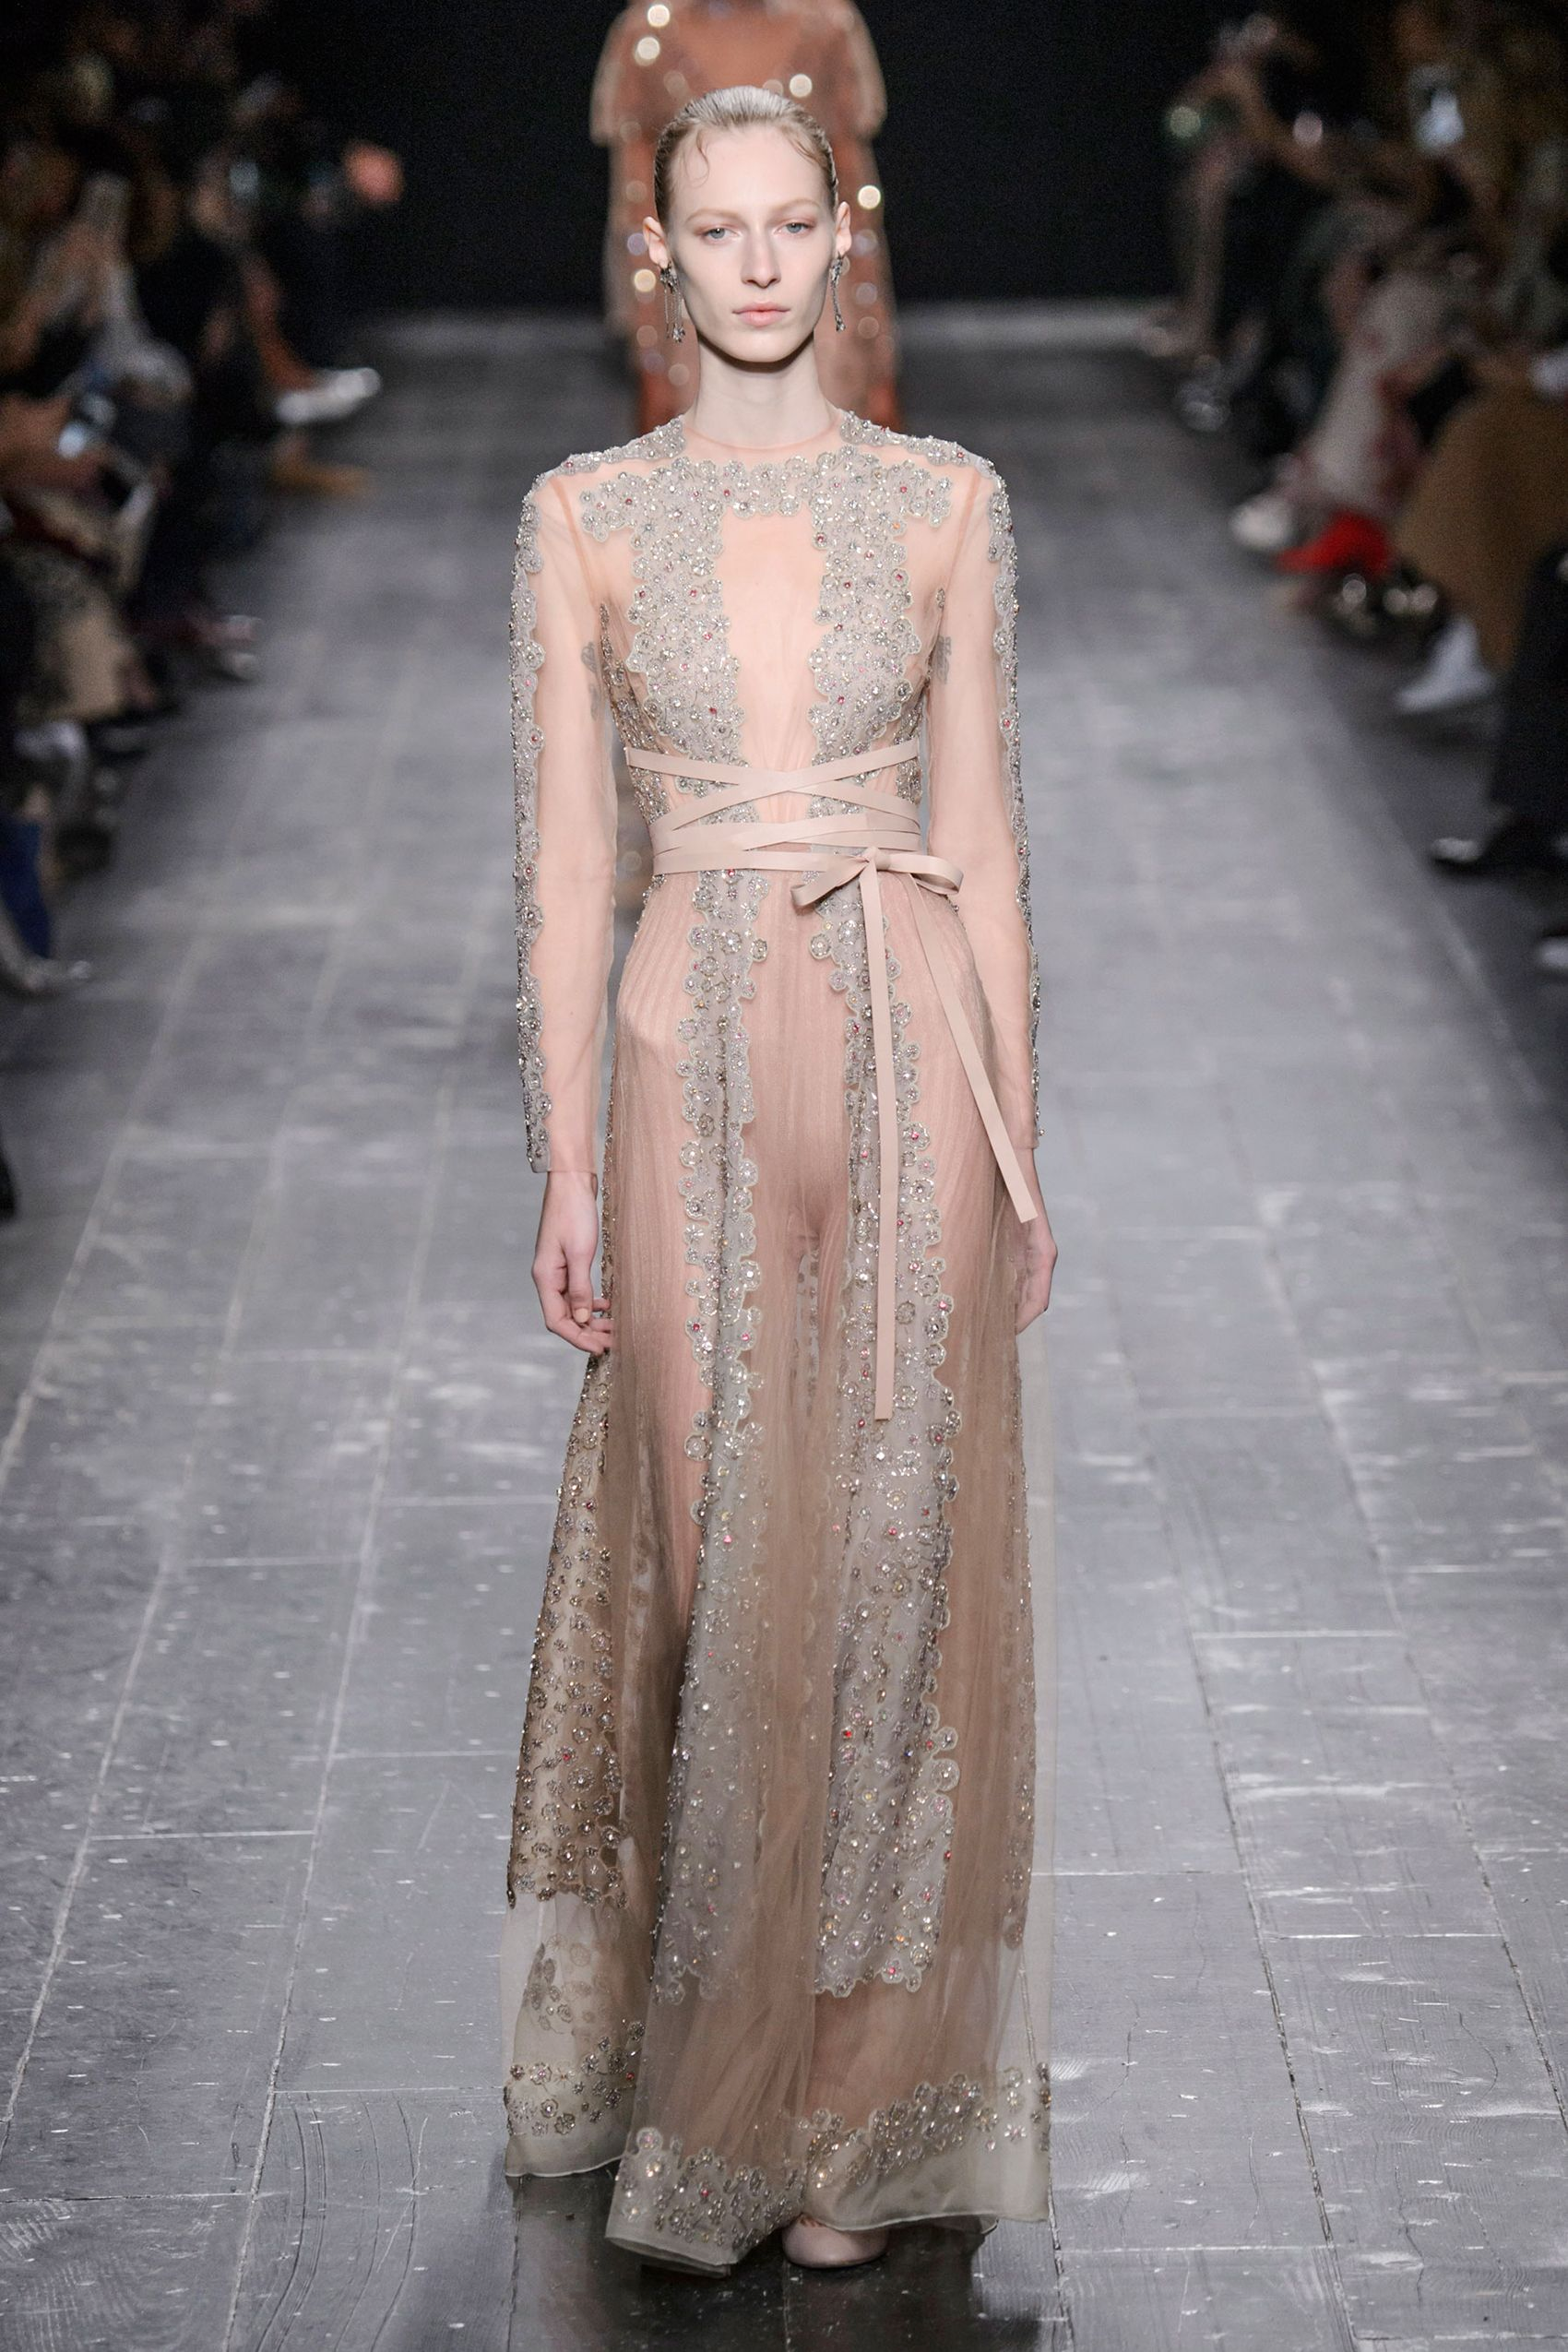 2017 fashion week dates - Best Runway Fashion At Paris Fashion Week Fall 2016 Paris Fashion Week Fall 2016 Runway Trends